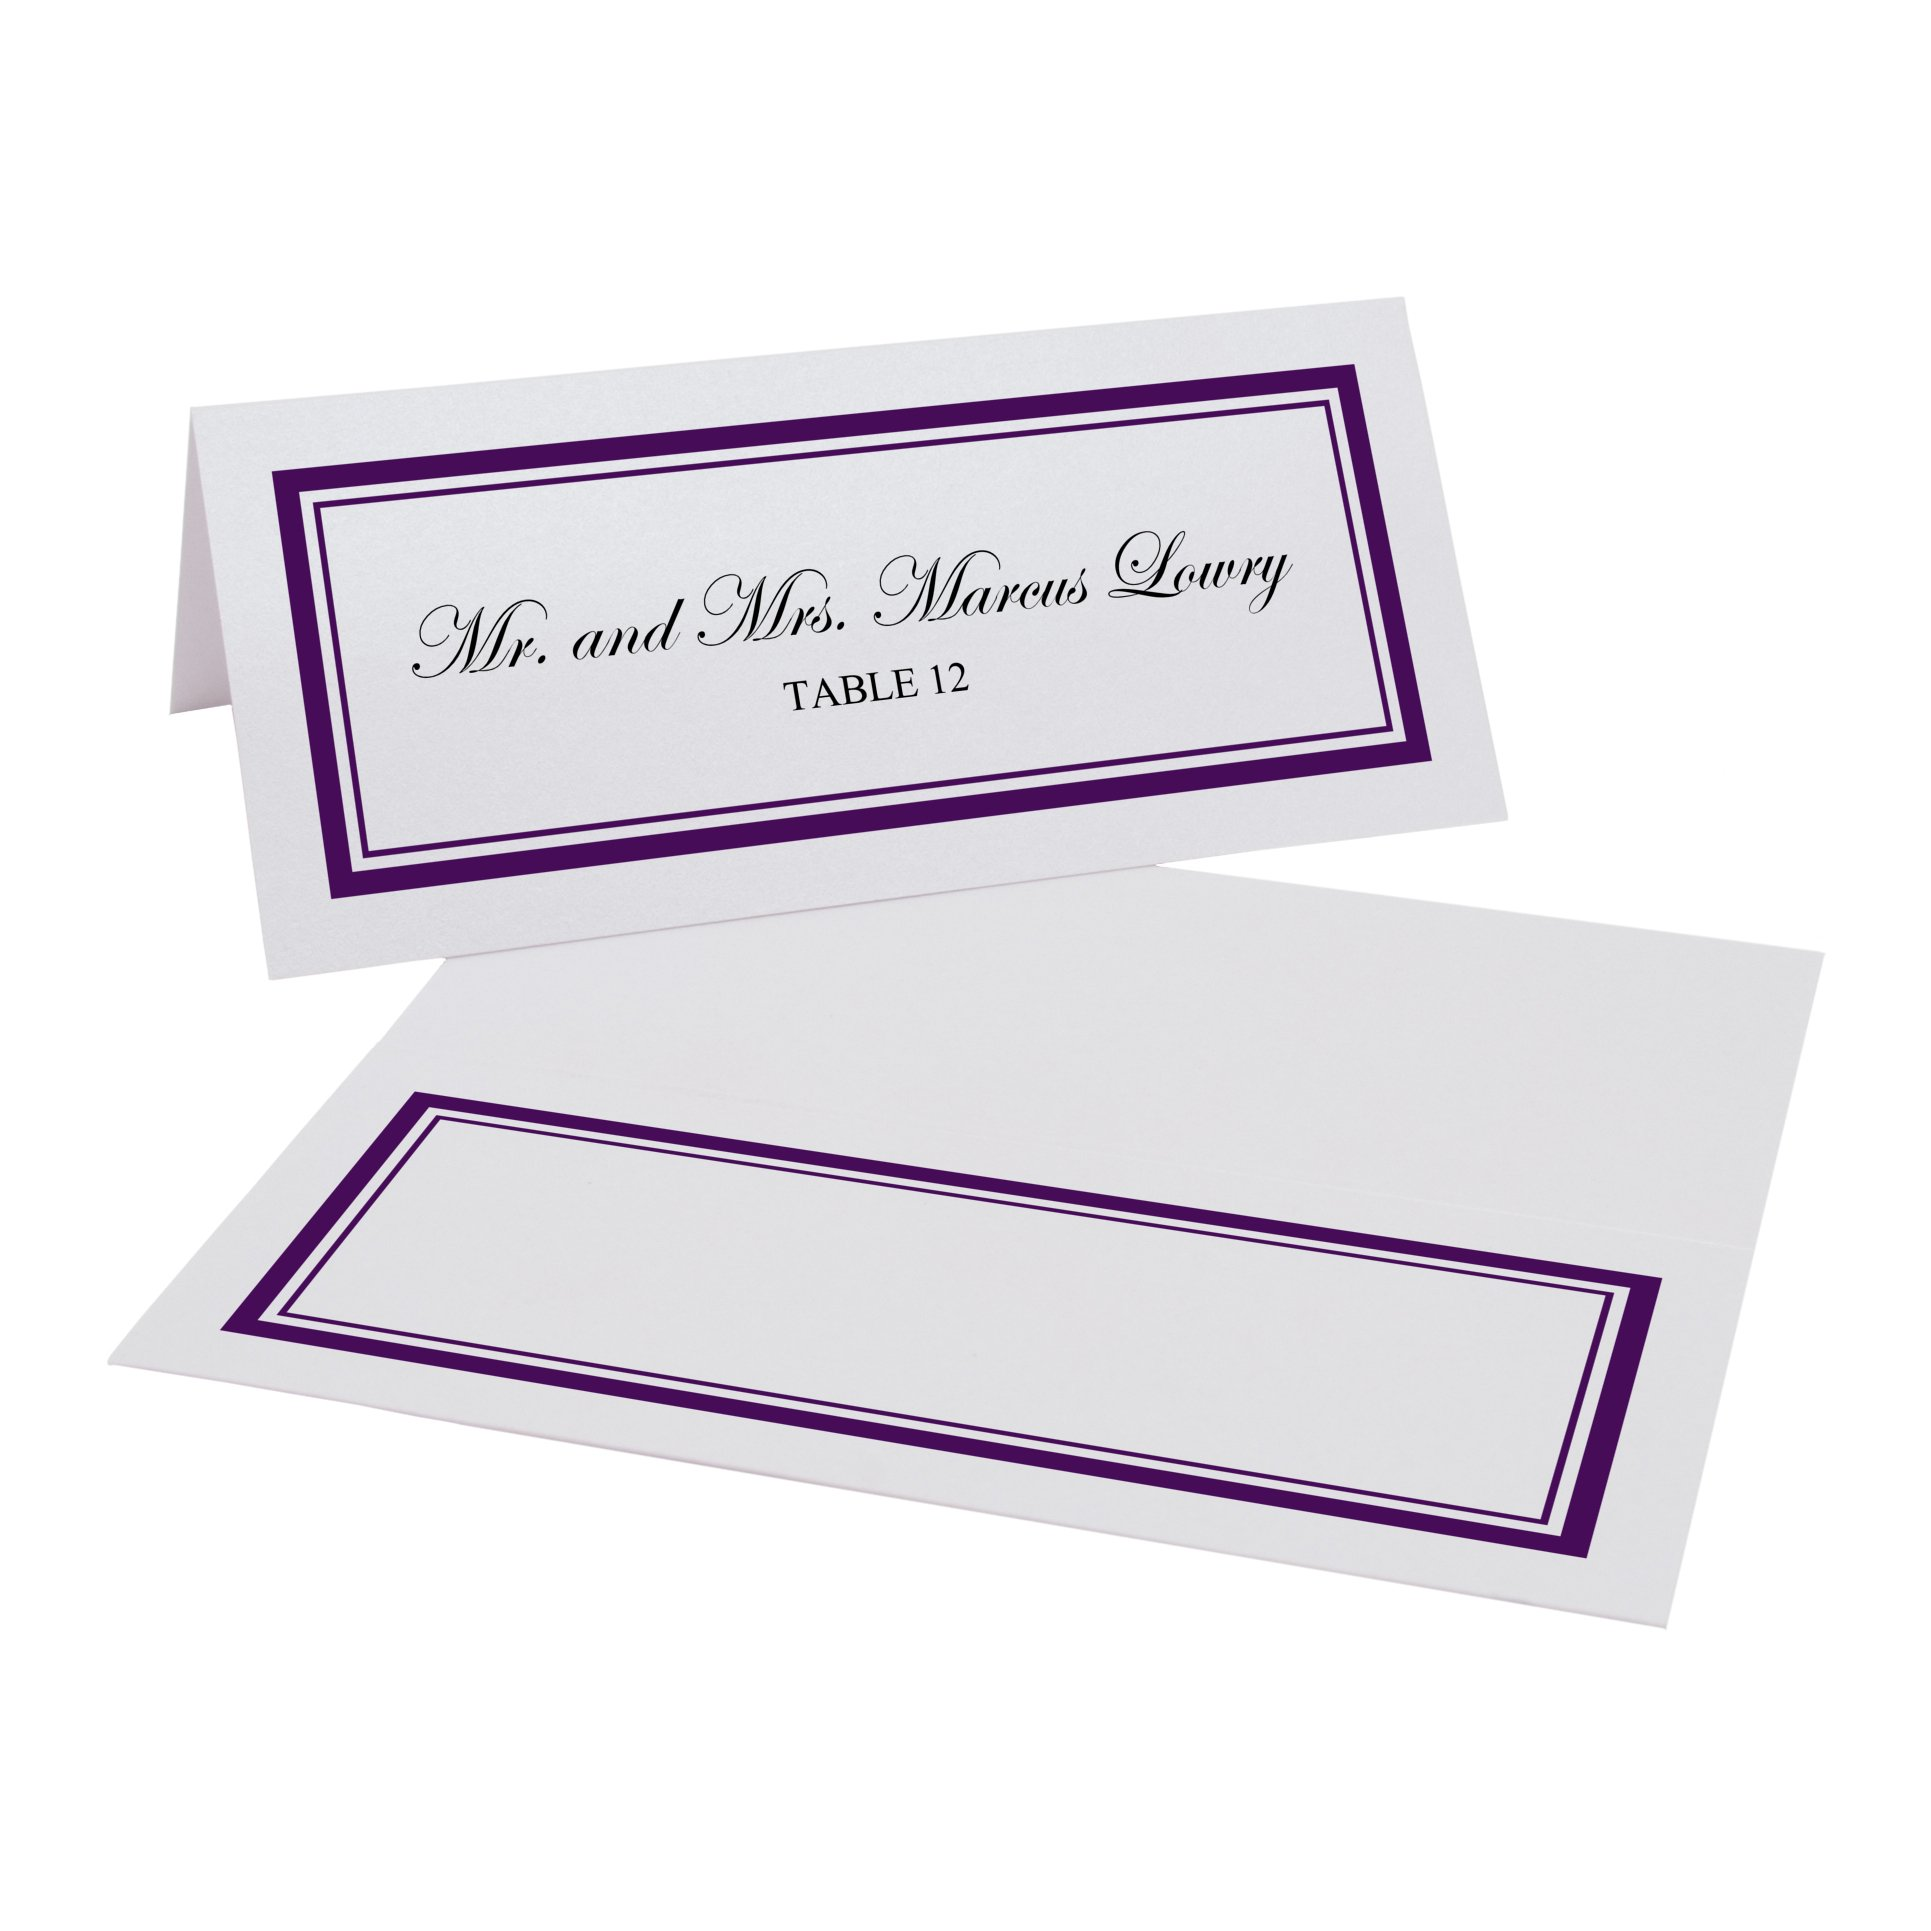 Double Line Border Easy Print Place Cards, Pearl White, Eggplant, Set of 450 (113 Sheets) by Documents and Designs